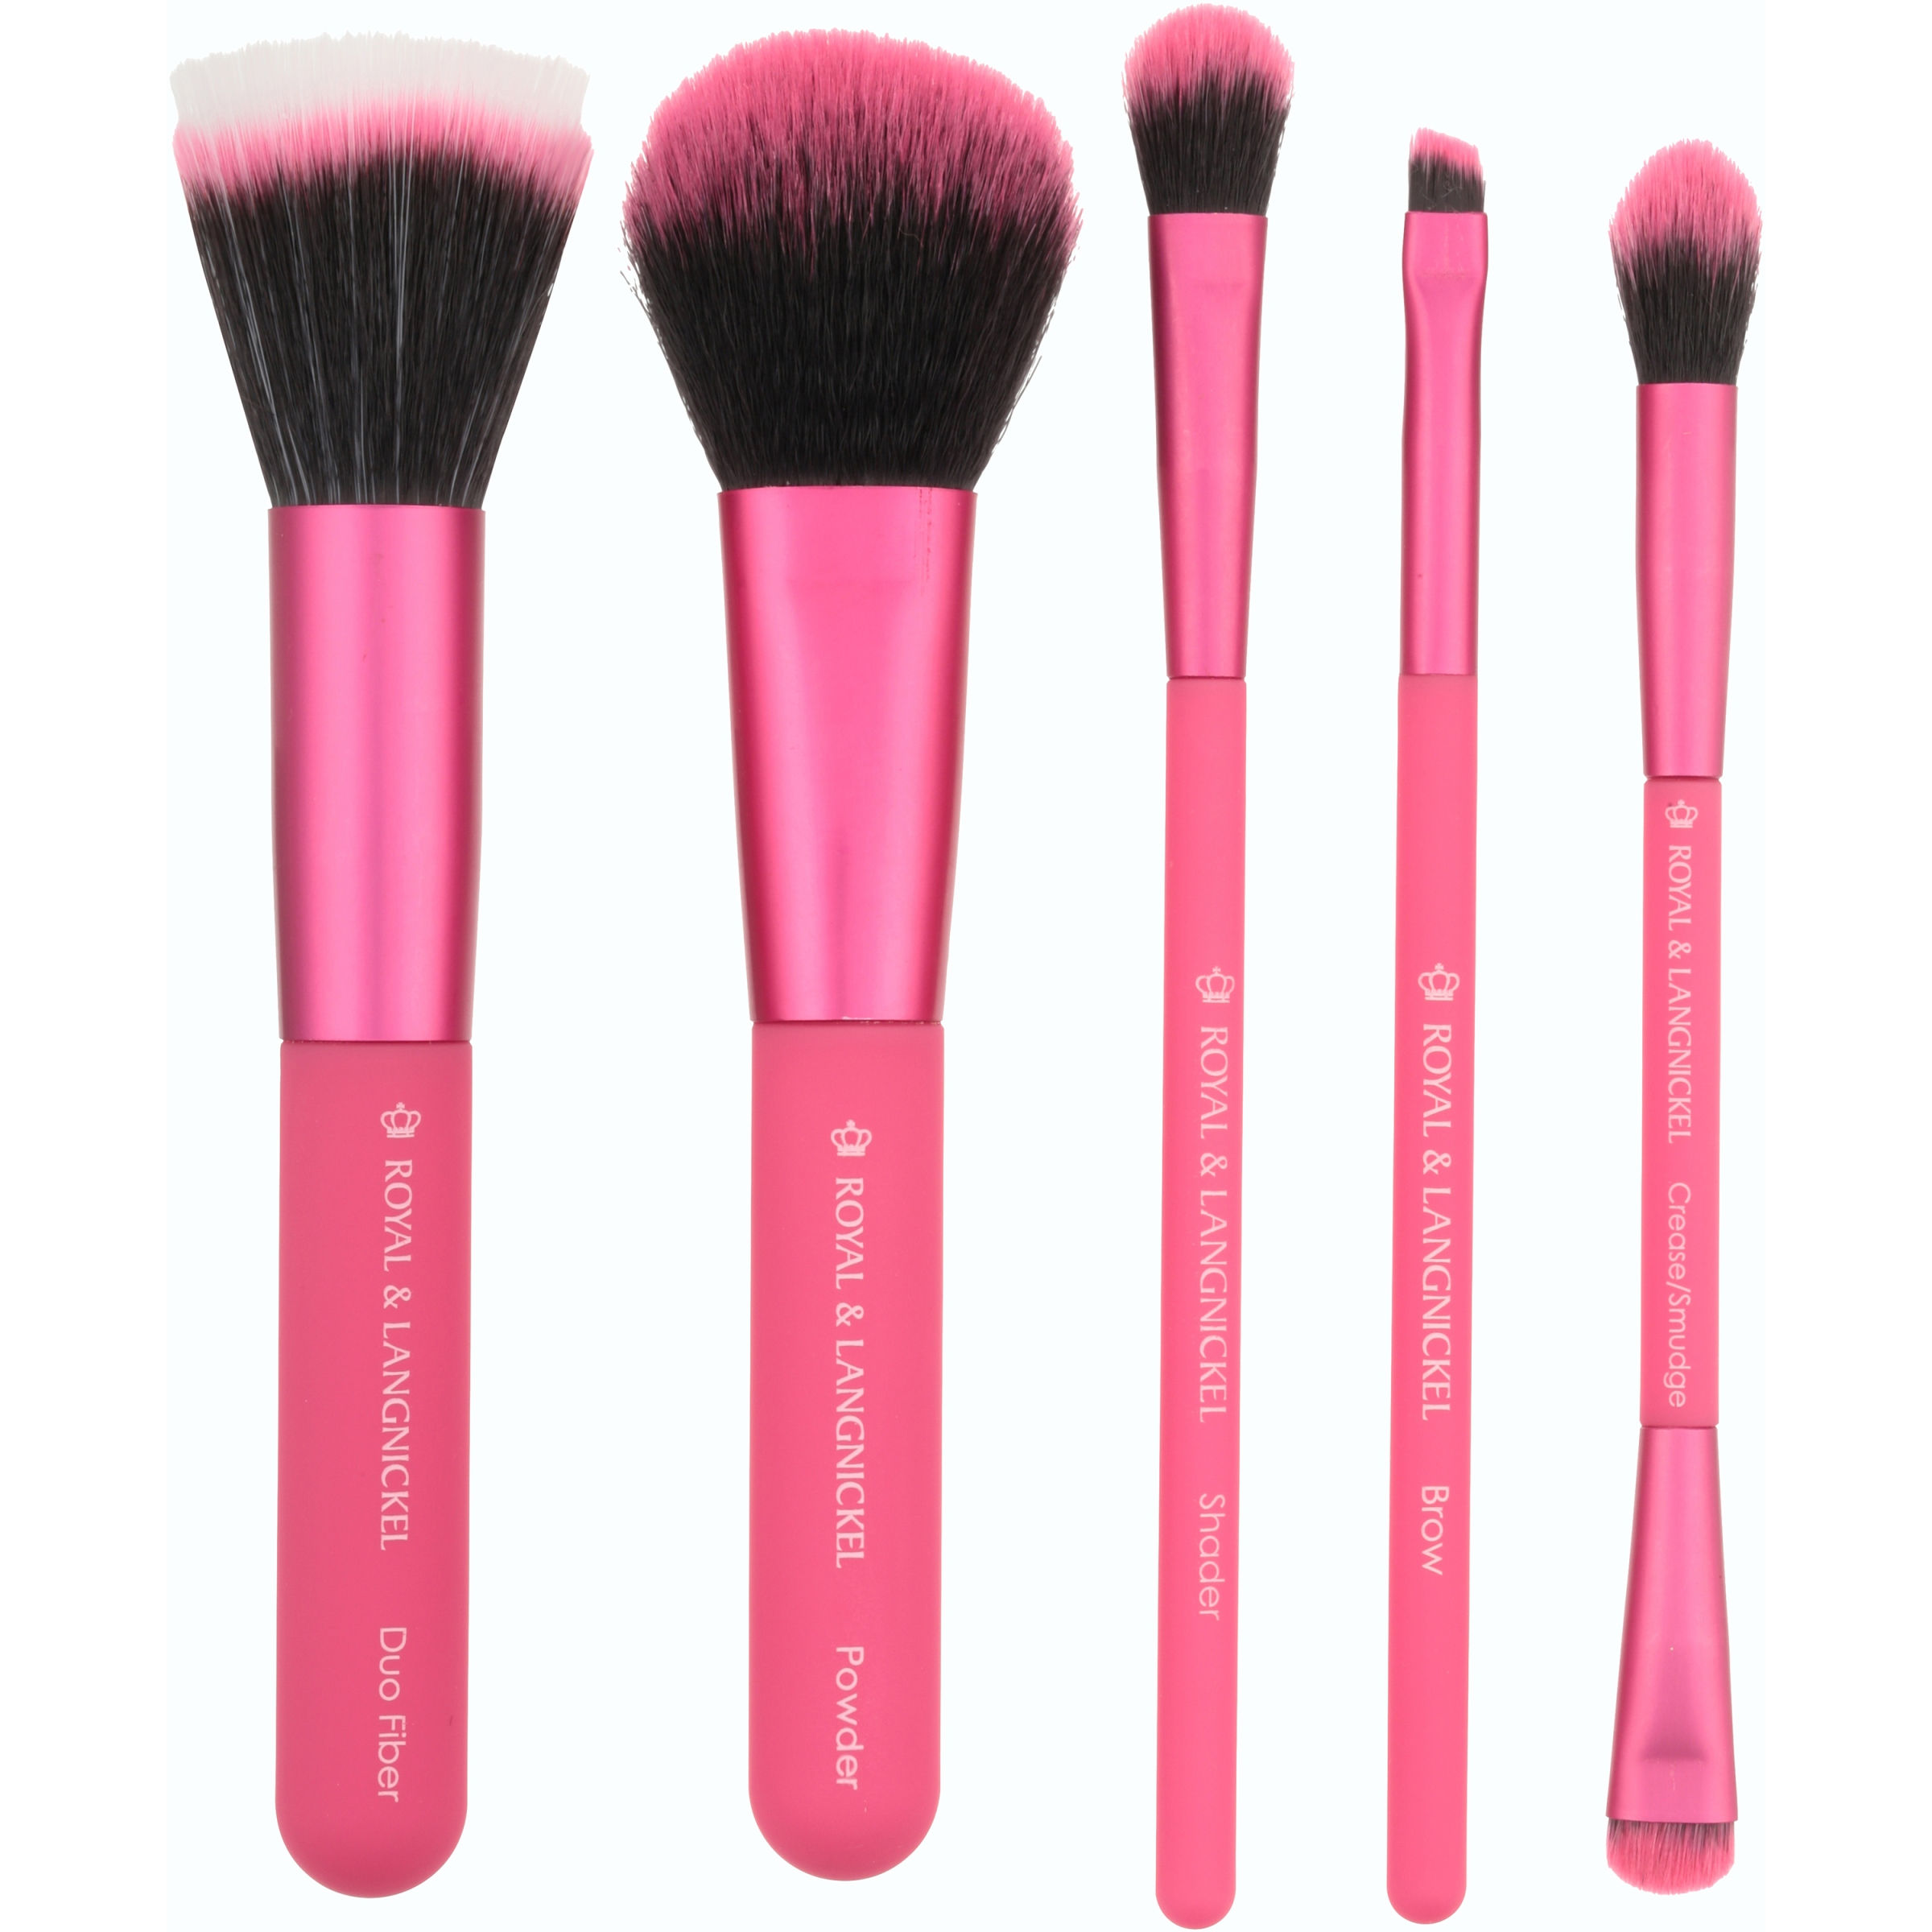 Moda™ Perfect Mineral Professional Makeup Brush Set 6 pc Carded Pack